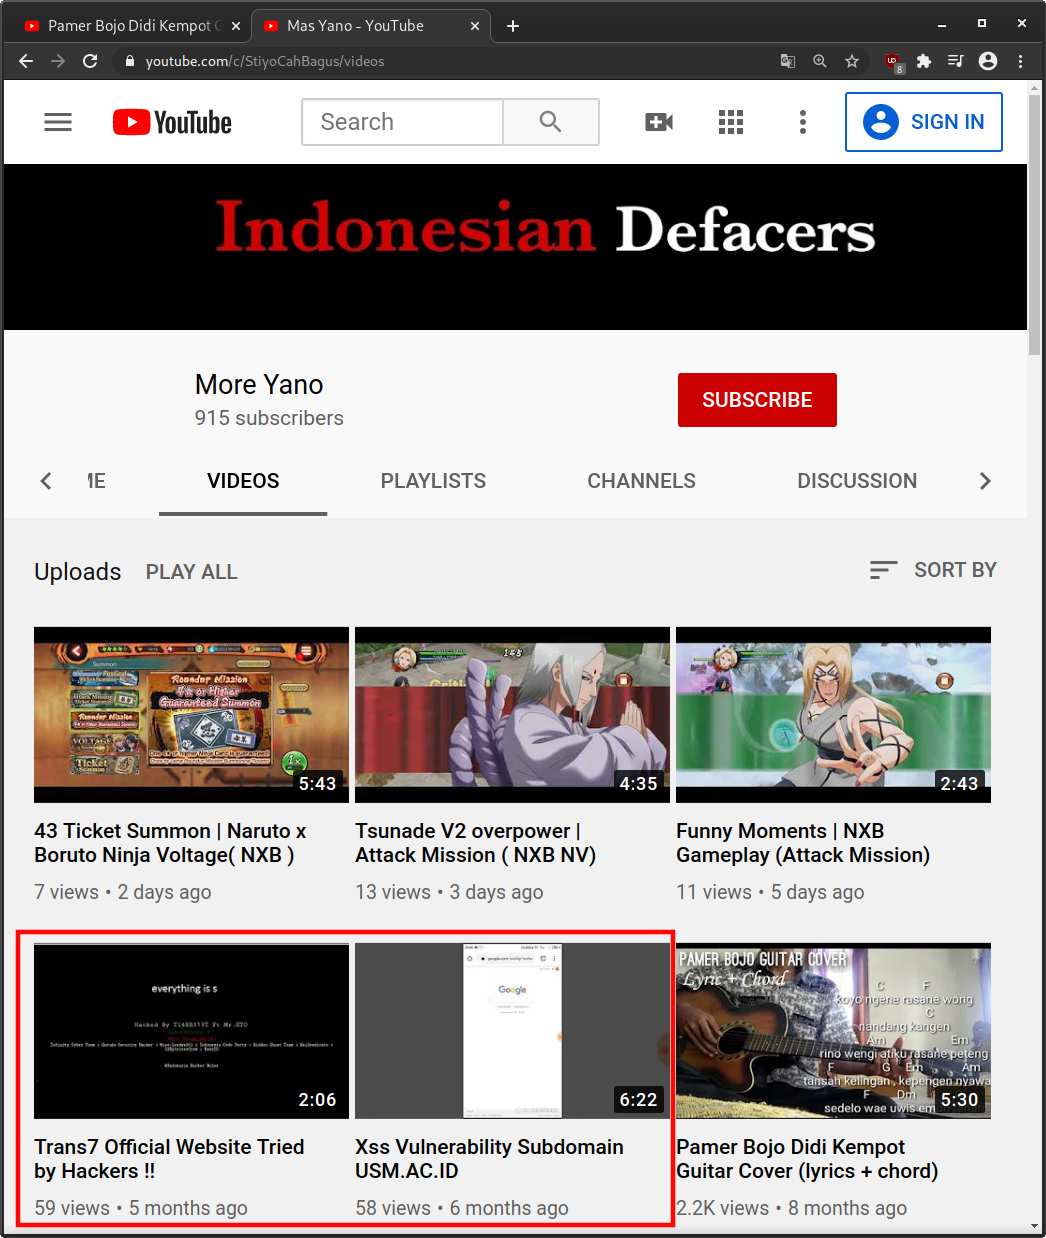 Indonesian Defacers YouTube Channel